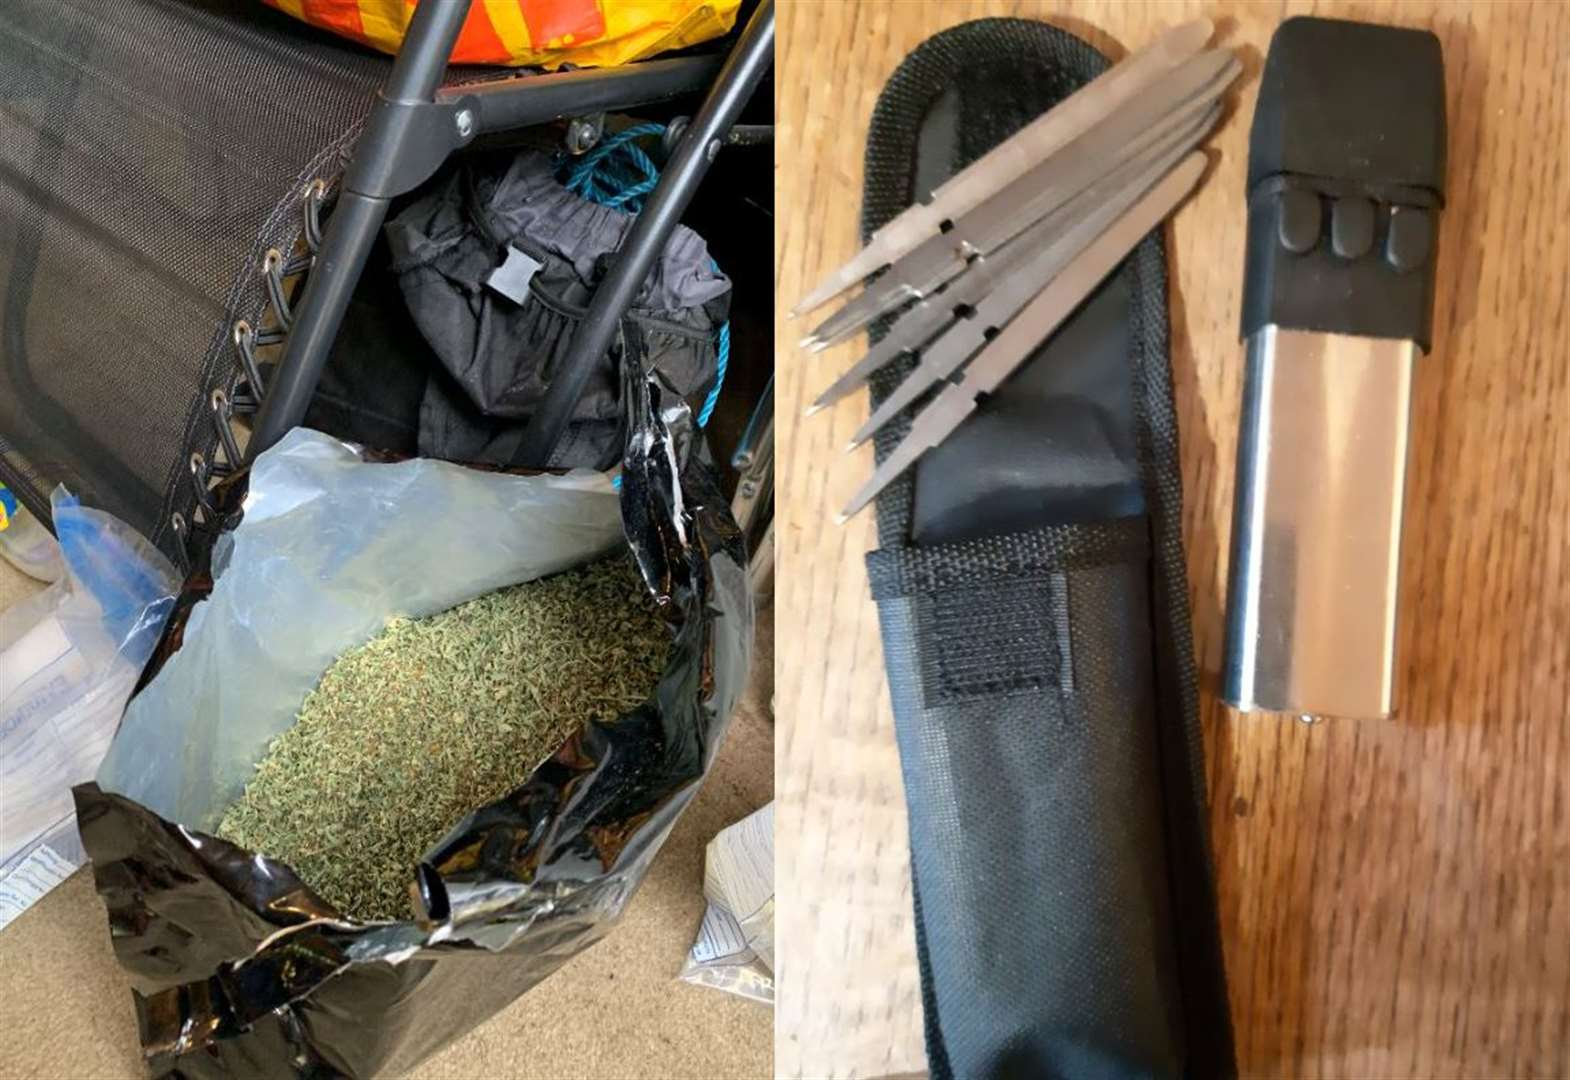 Police seize drugs and dart gun from a Burwell house